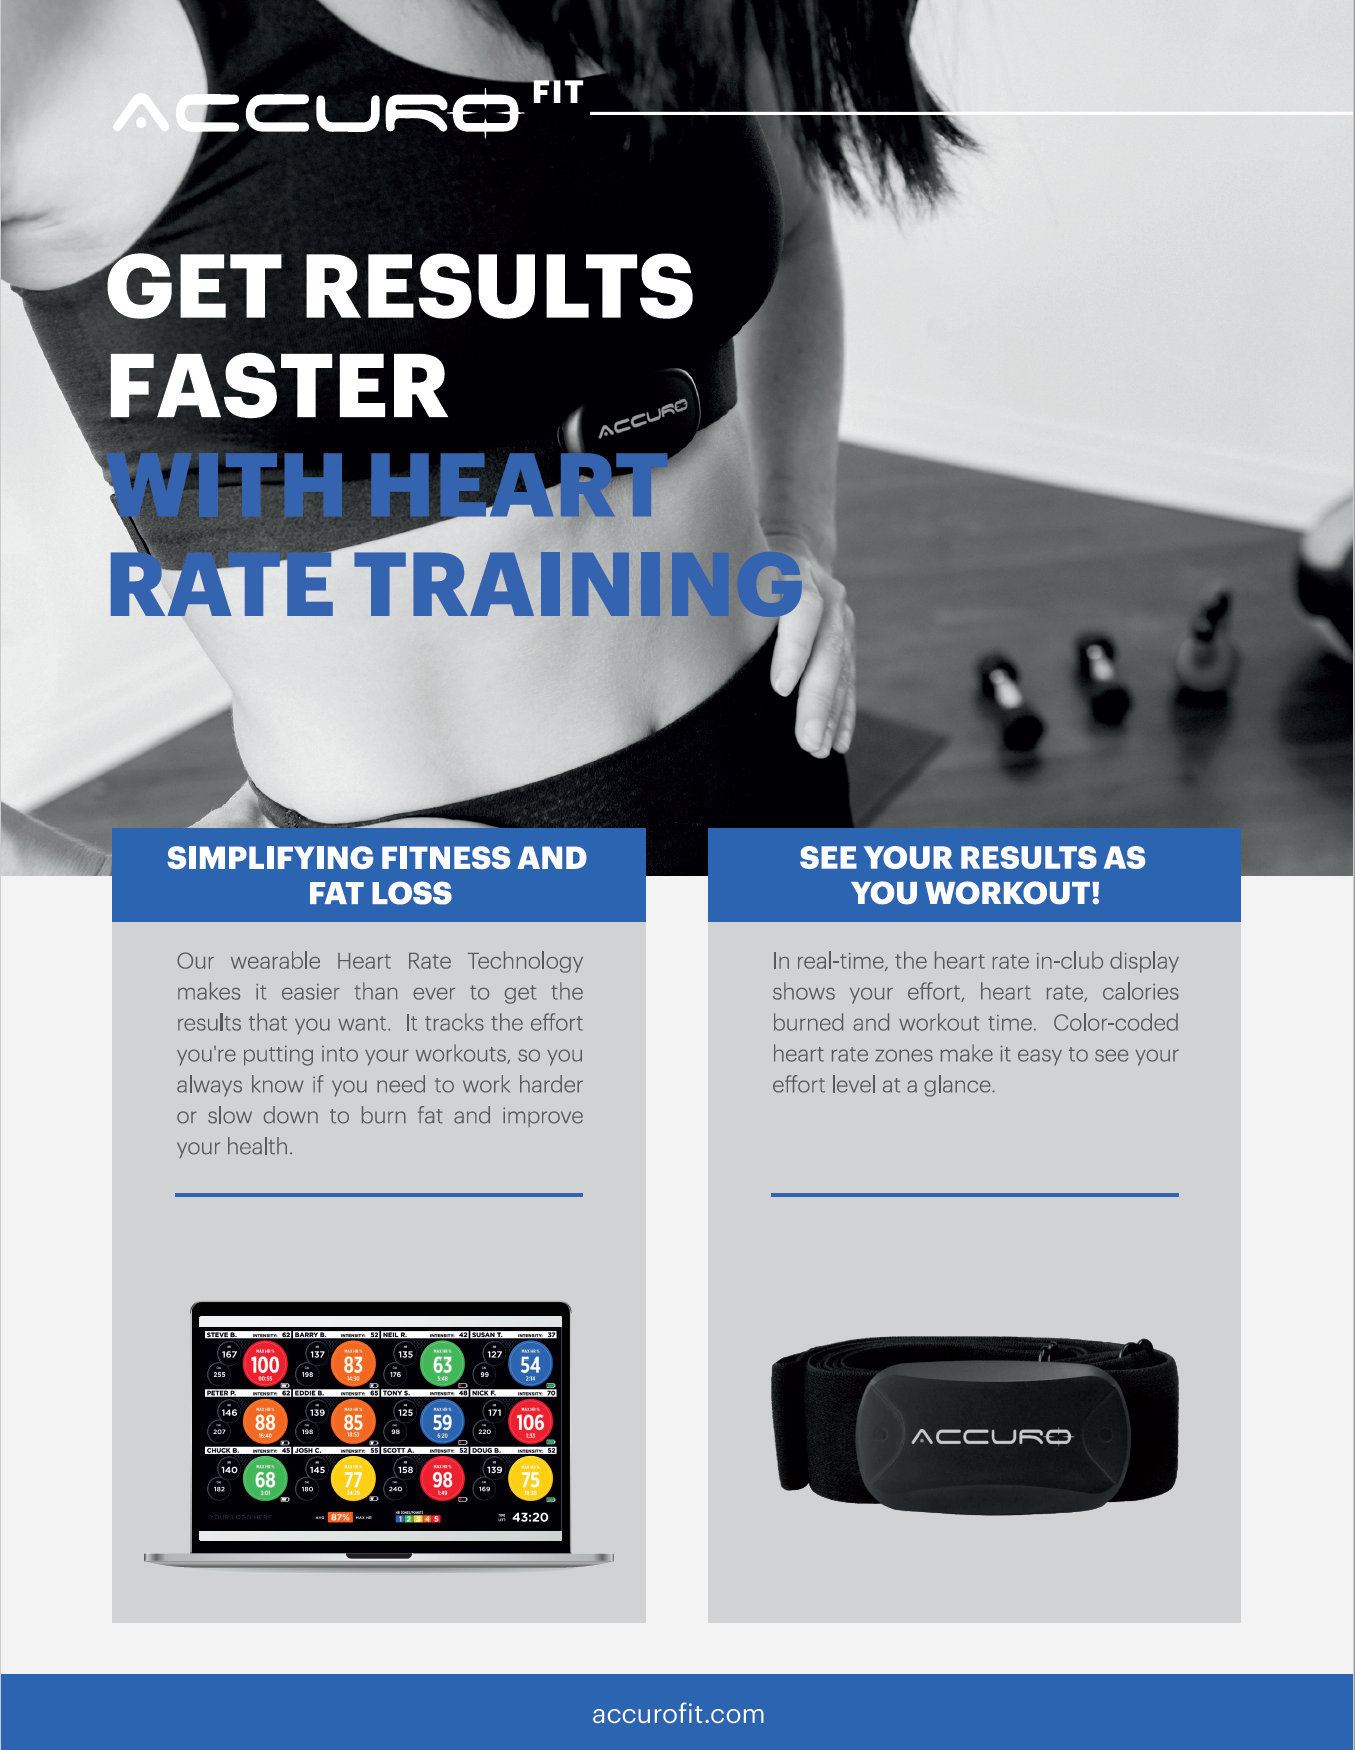 Get Results Faster with Heart Rate Training